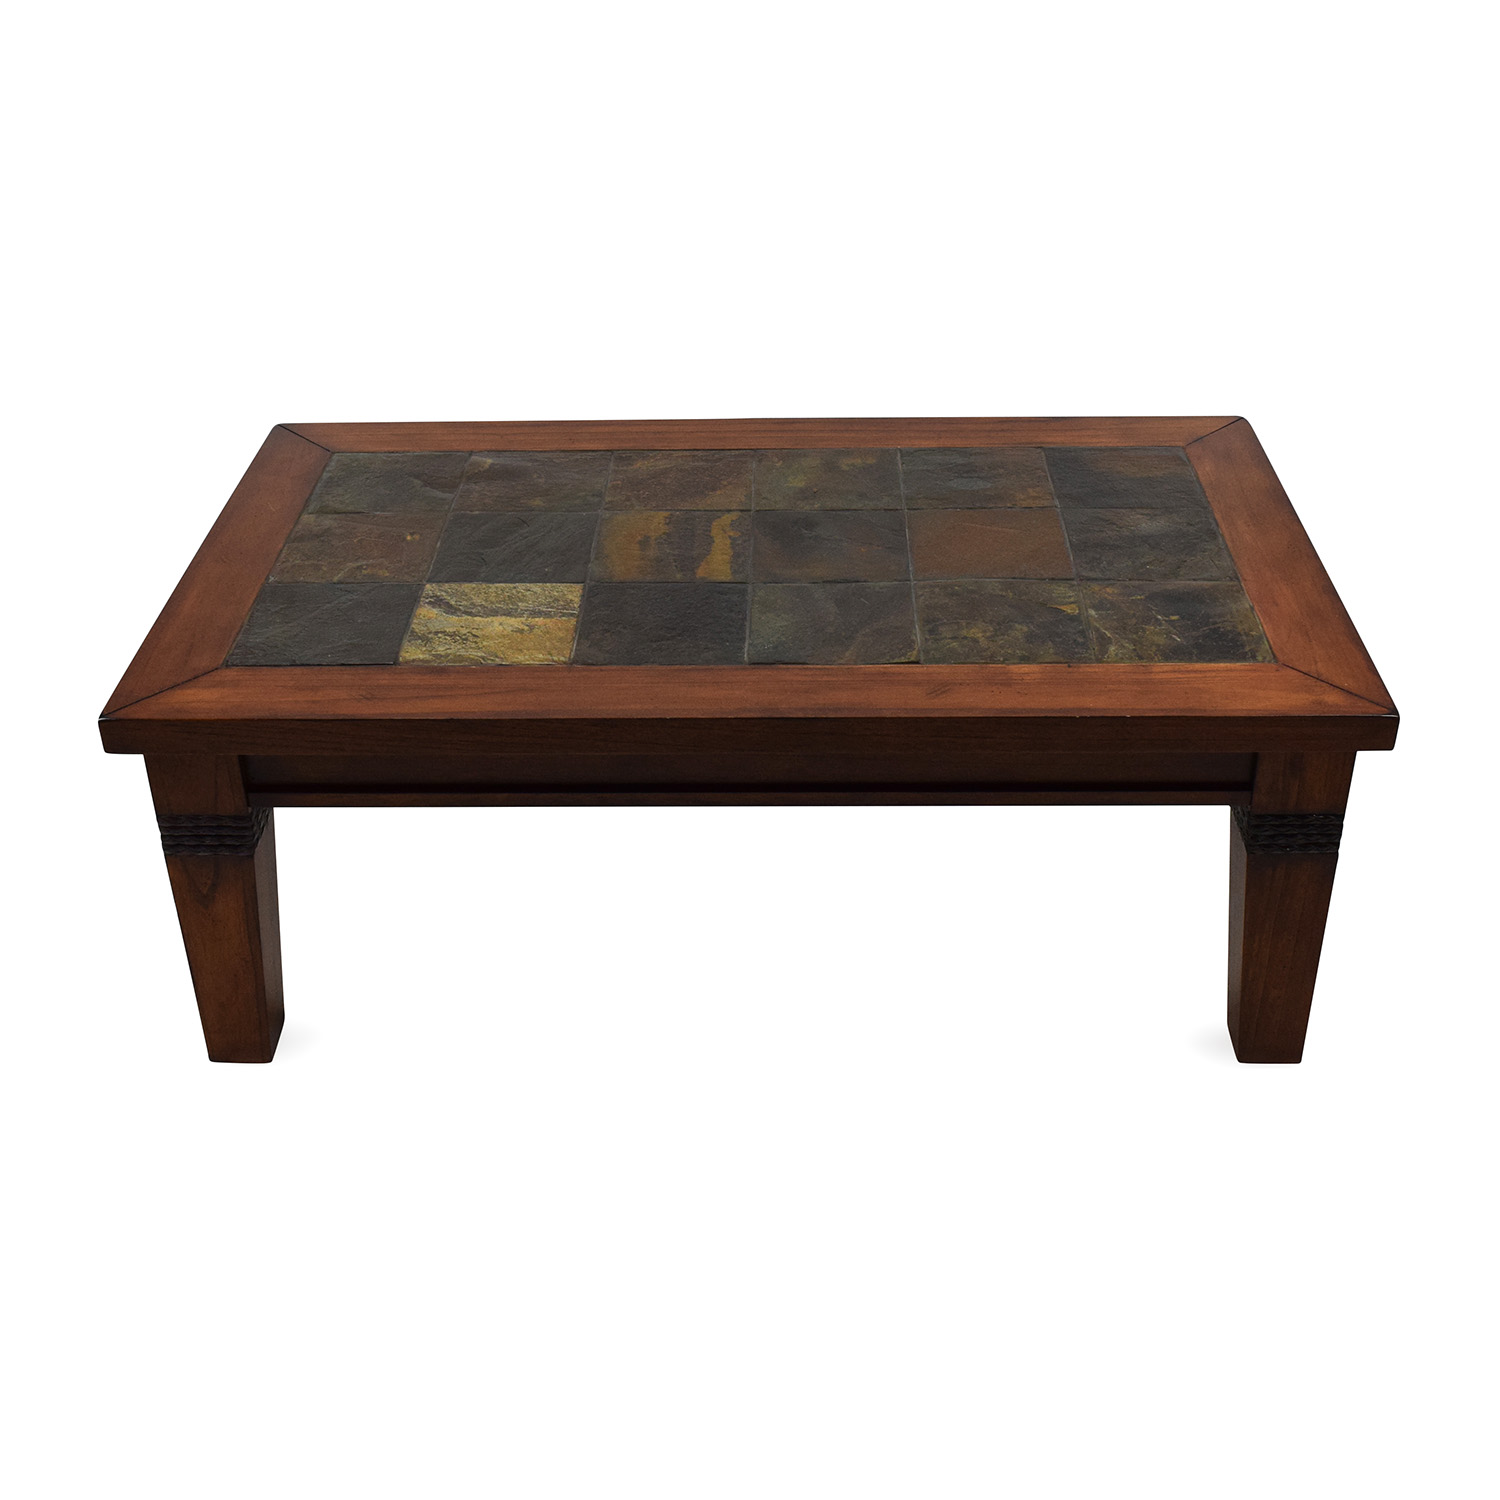 100 used furniture sale online india 77 off wooden u0026 tiled coffee table tables home Tables for coffee shop